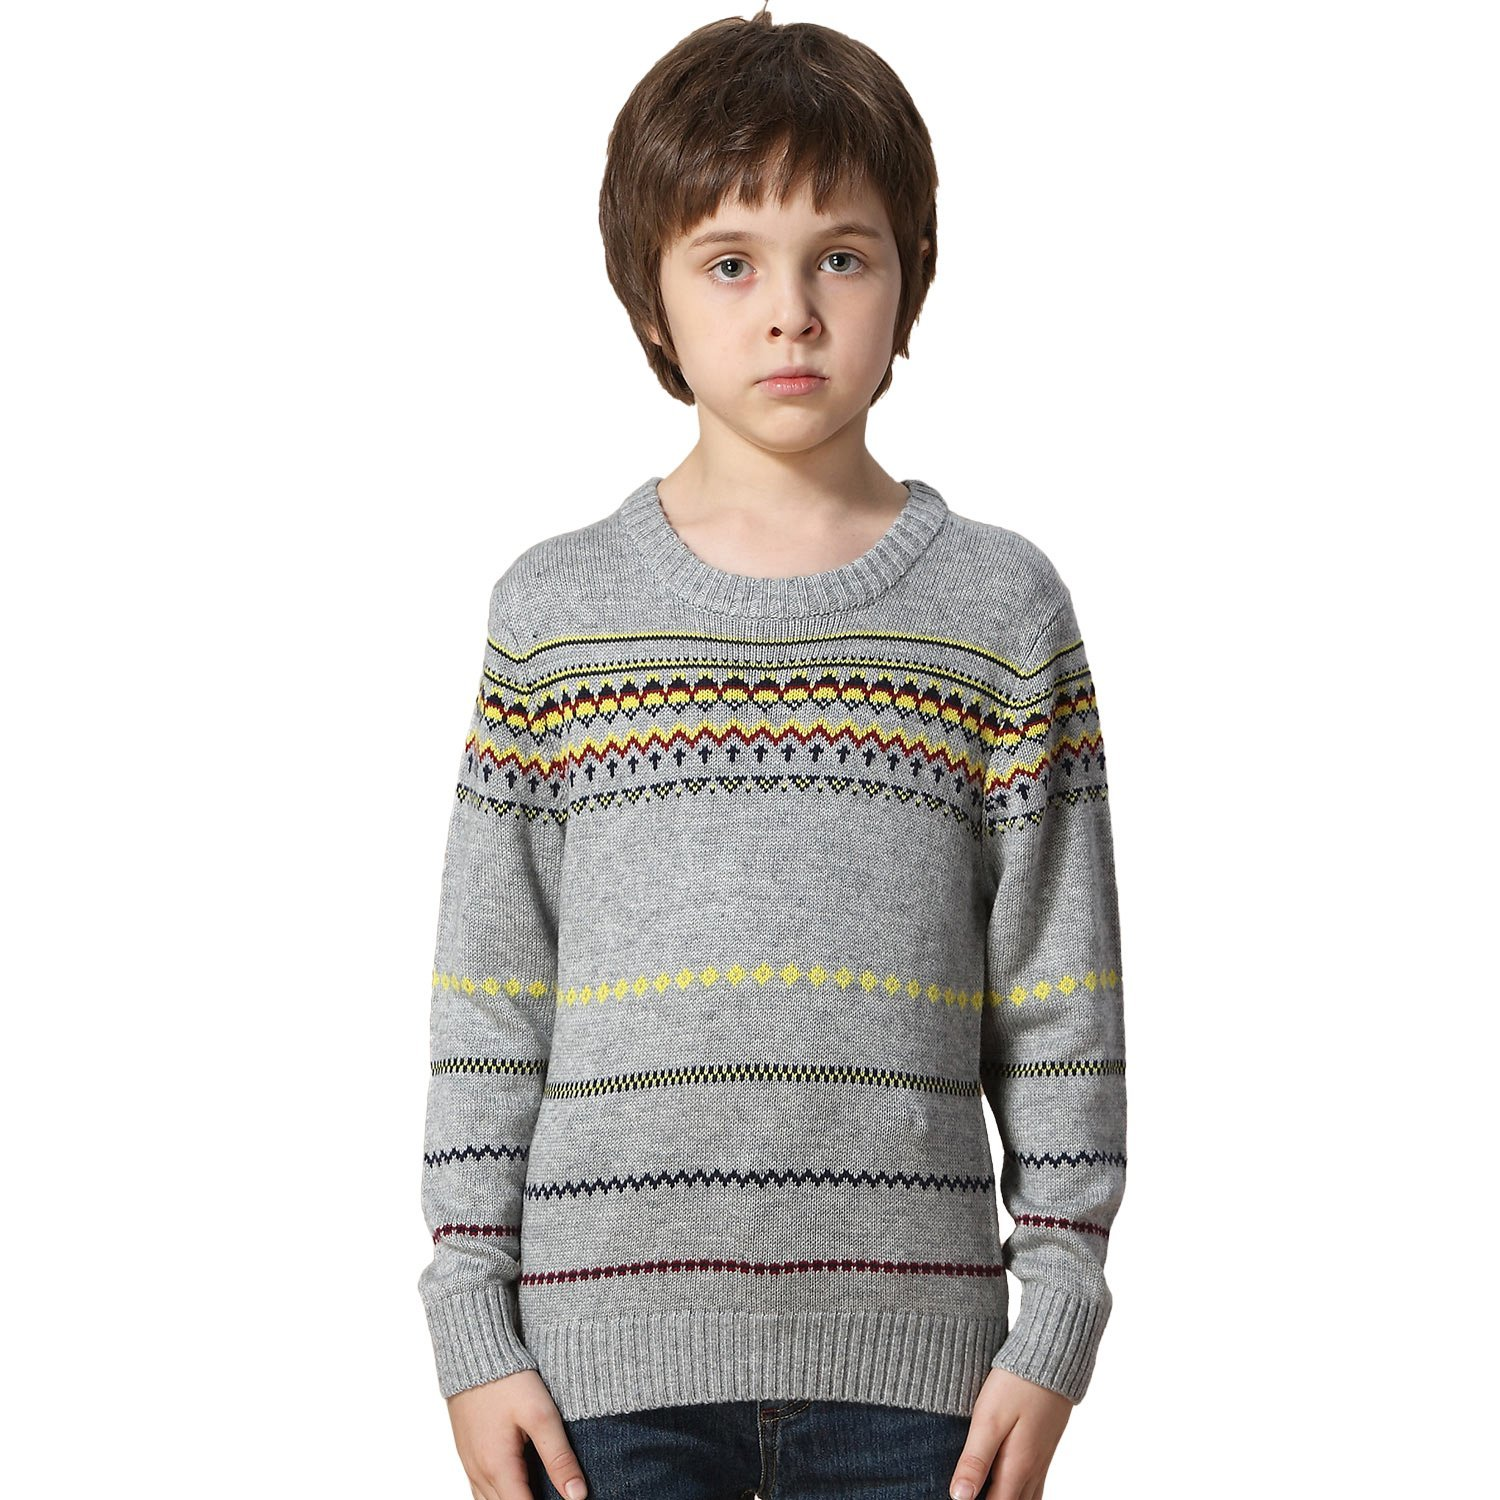 Leo&Lily Boys' Wool Blends Casual Dobby Sweater Pullover Jacquard LLB1261-melange jac-10-$P